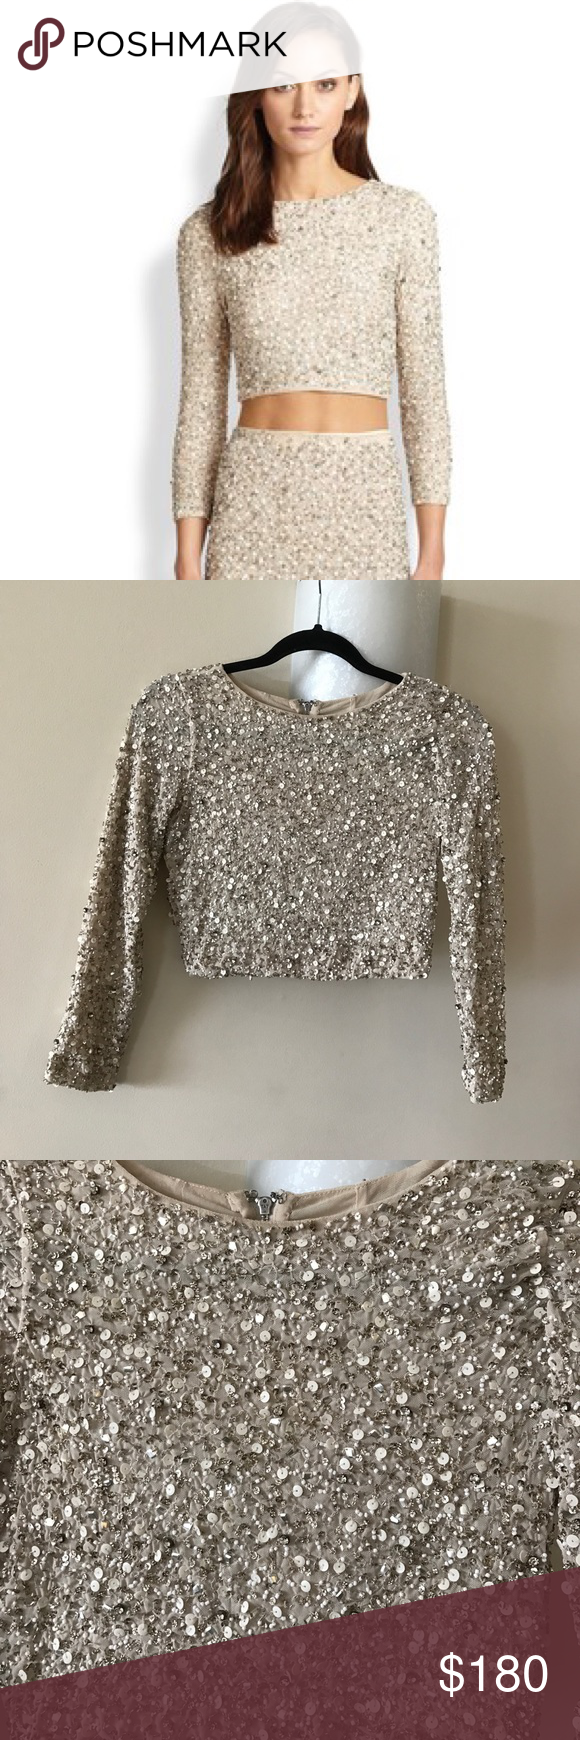 bff195409980b2 NEW Alice + Olivia Lacey Embellished Beaded Crop NEW with tags! Lacey  Embellished Crop Top Stunning sequins and beads embellish a midriff-baring cropped  top ...